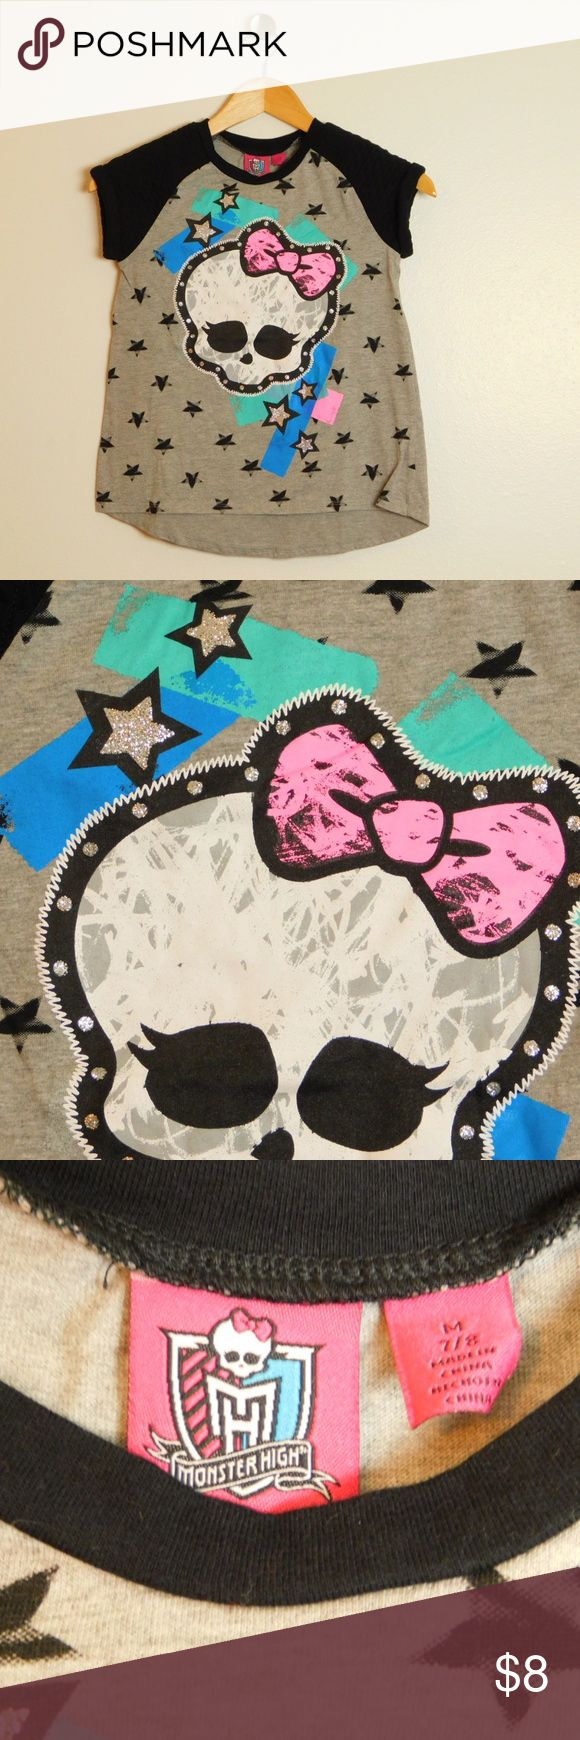 Monster High Girls Skull Graphic Tee size 7/8 EUC Monster High Children's kids size 7/8 GUC Gently Used Condition, no stains, holes  Crew neckline Rolled cuff short sleeve, quilted Glitter skull graphic at front Rounded hem Cotton/polyester Machine washable monster high Shirts & Tops Tees - Short Sleeve